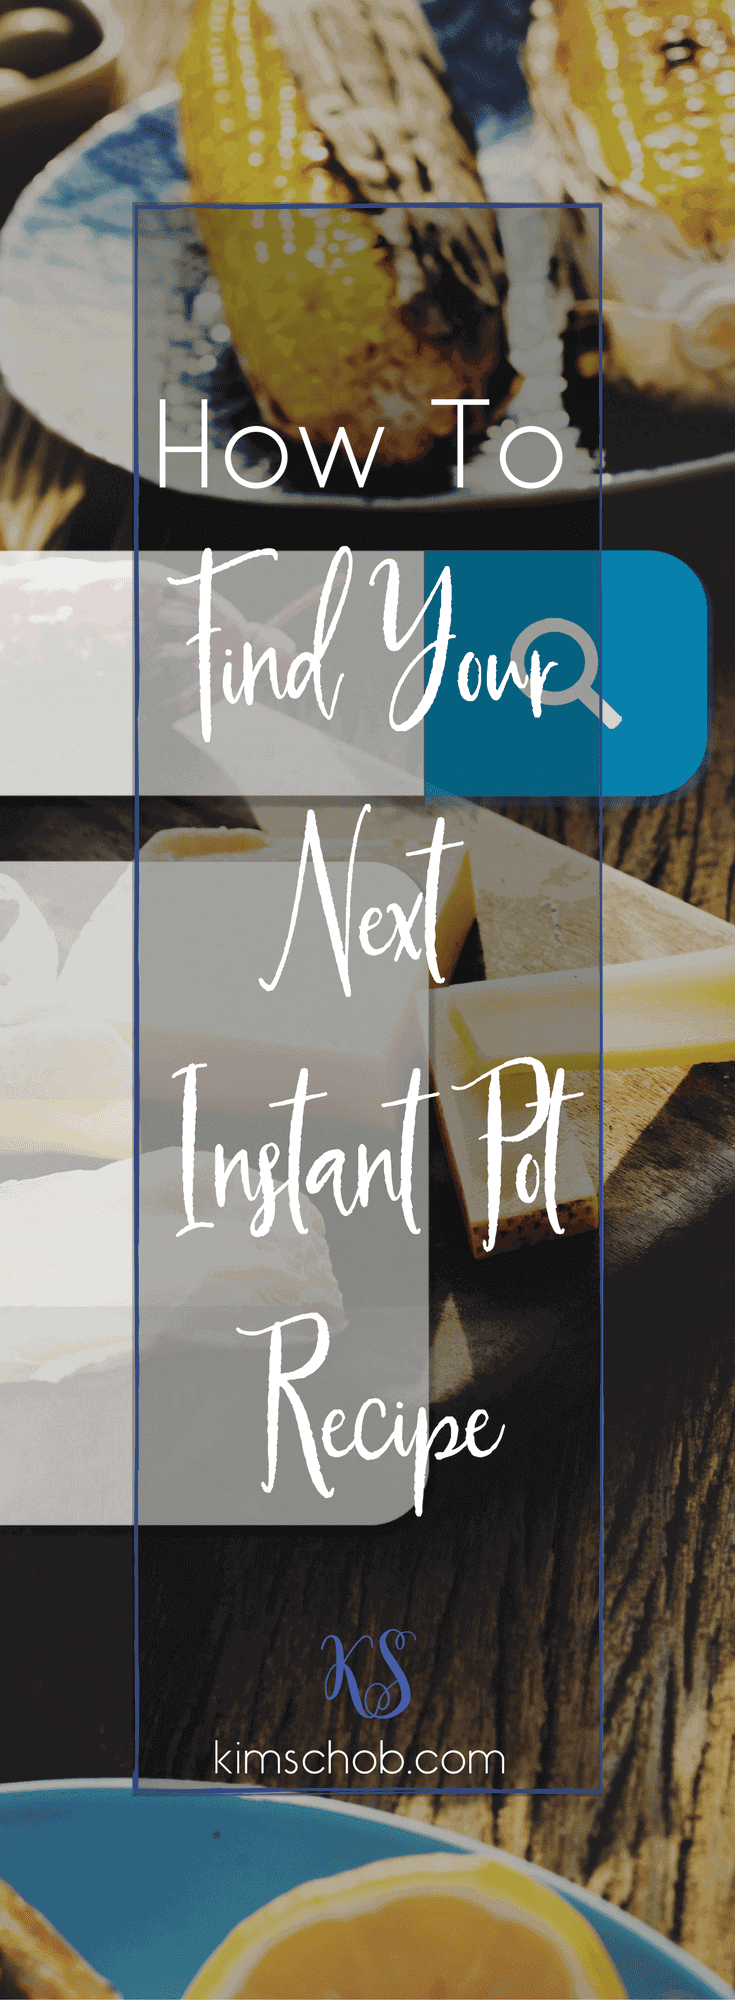 How To Find Your Next Instant Pot Recipes | #instantpotrecipes #kimschob #instantpot